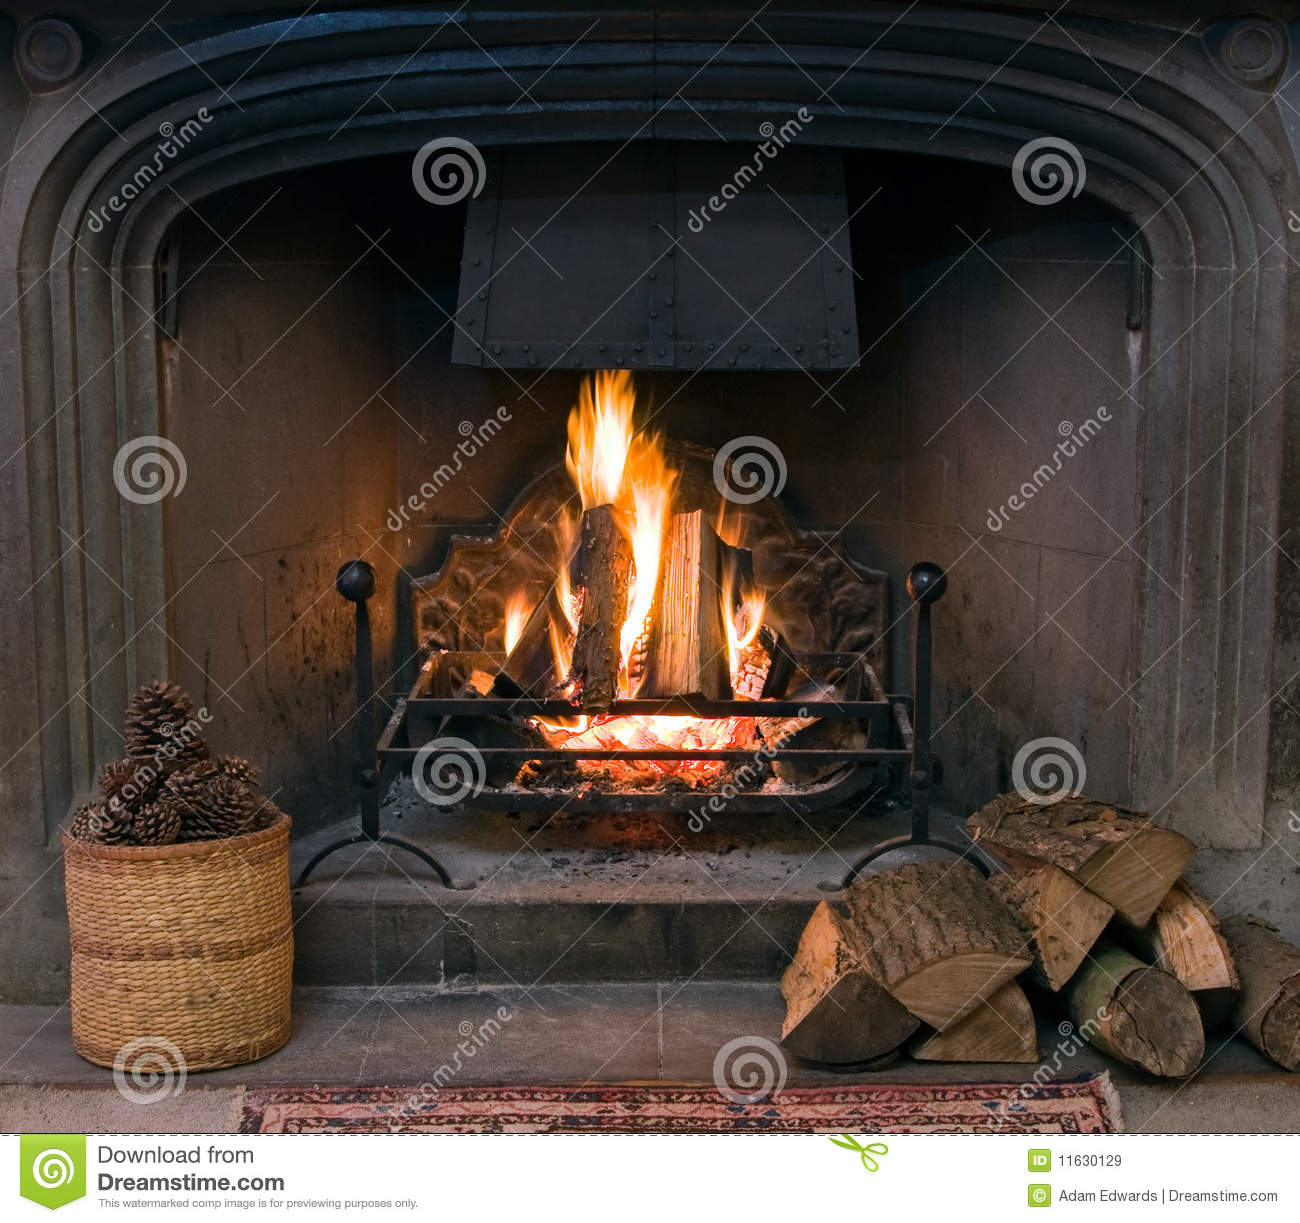 How To Build A Indoor Fireplace